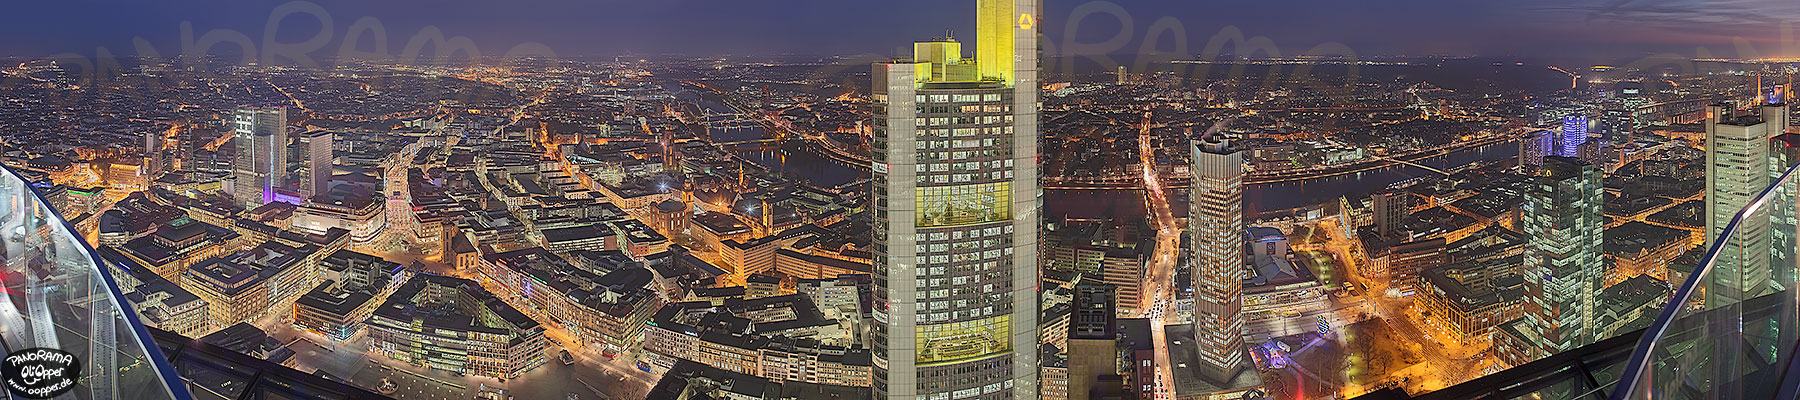 Frankfurt - Maintower - s�d - p460 - (c) by Oliver Opper